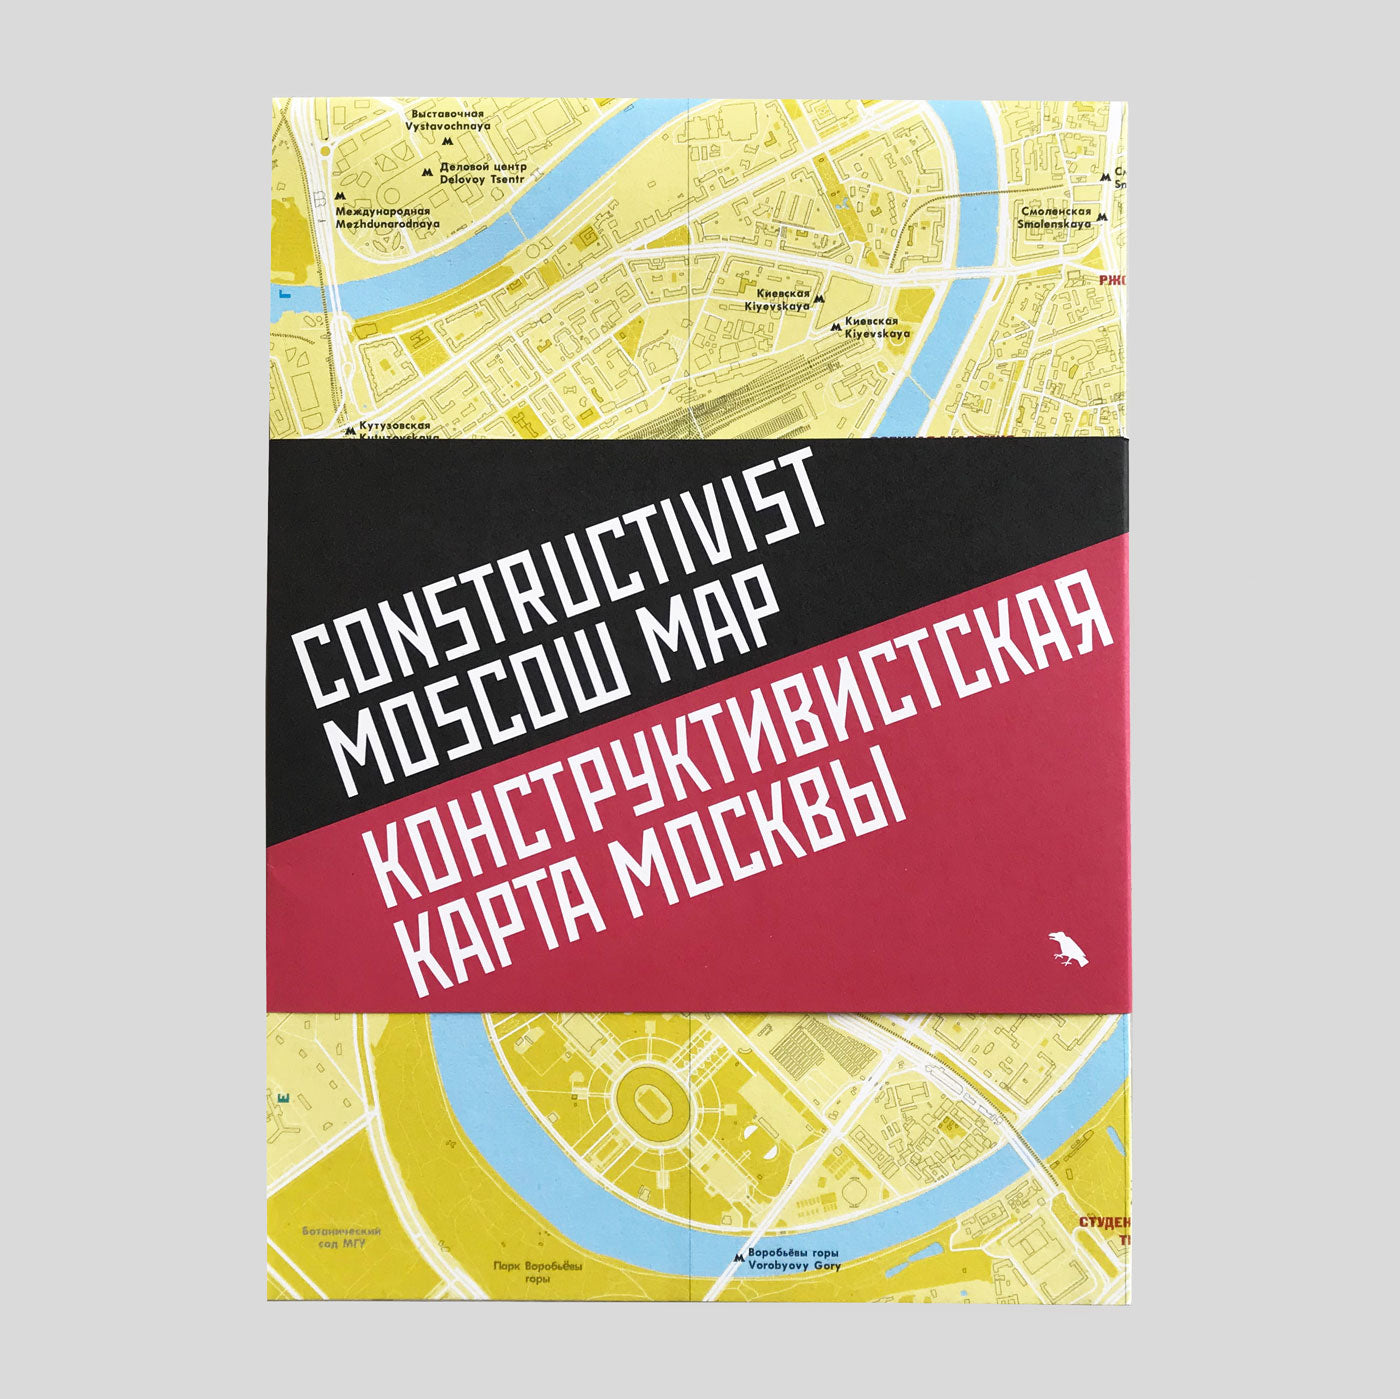 Constructivist Moscow Map